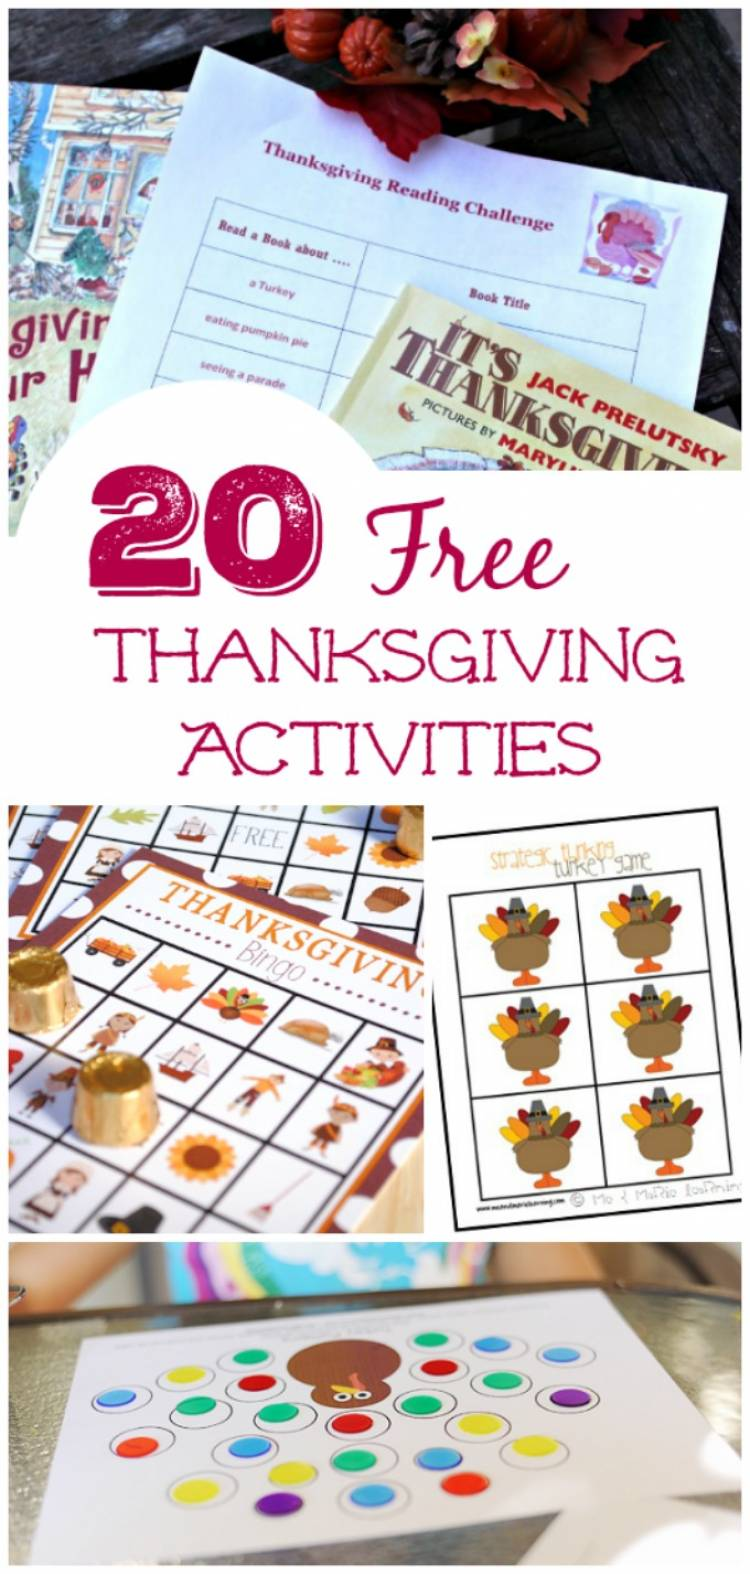 20 free thanksgiving printable activities for kids - Free Kids Printable Activities